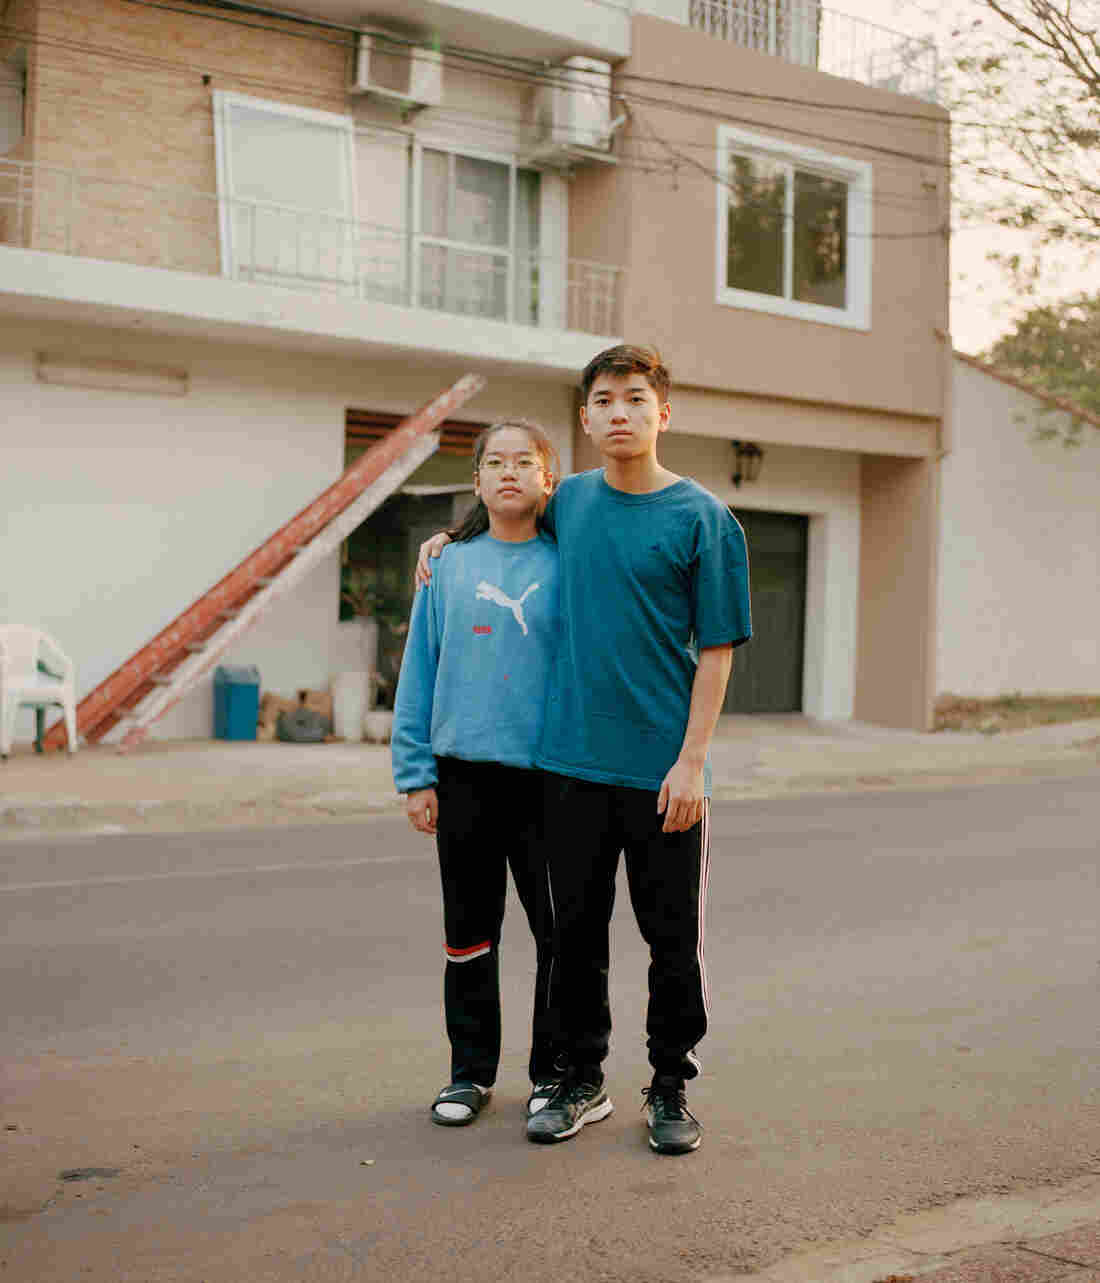 Siblings stand in the street and put an arm around each other.